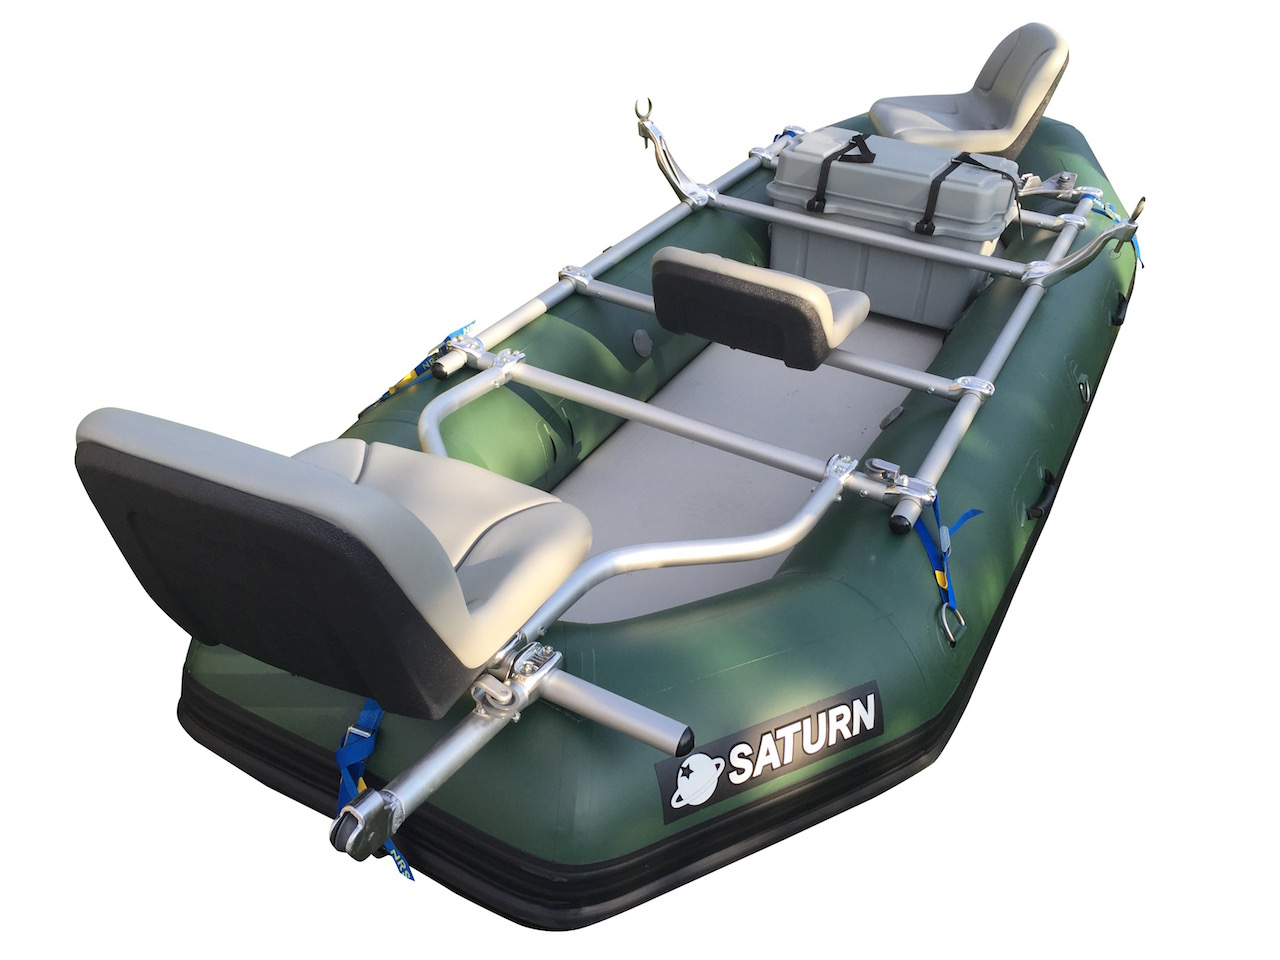 New 2017 12'6' Saturn Whitewater Raft - Custom 3 Seat NRS Fishing Frame